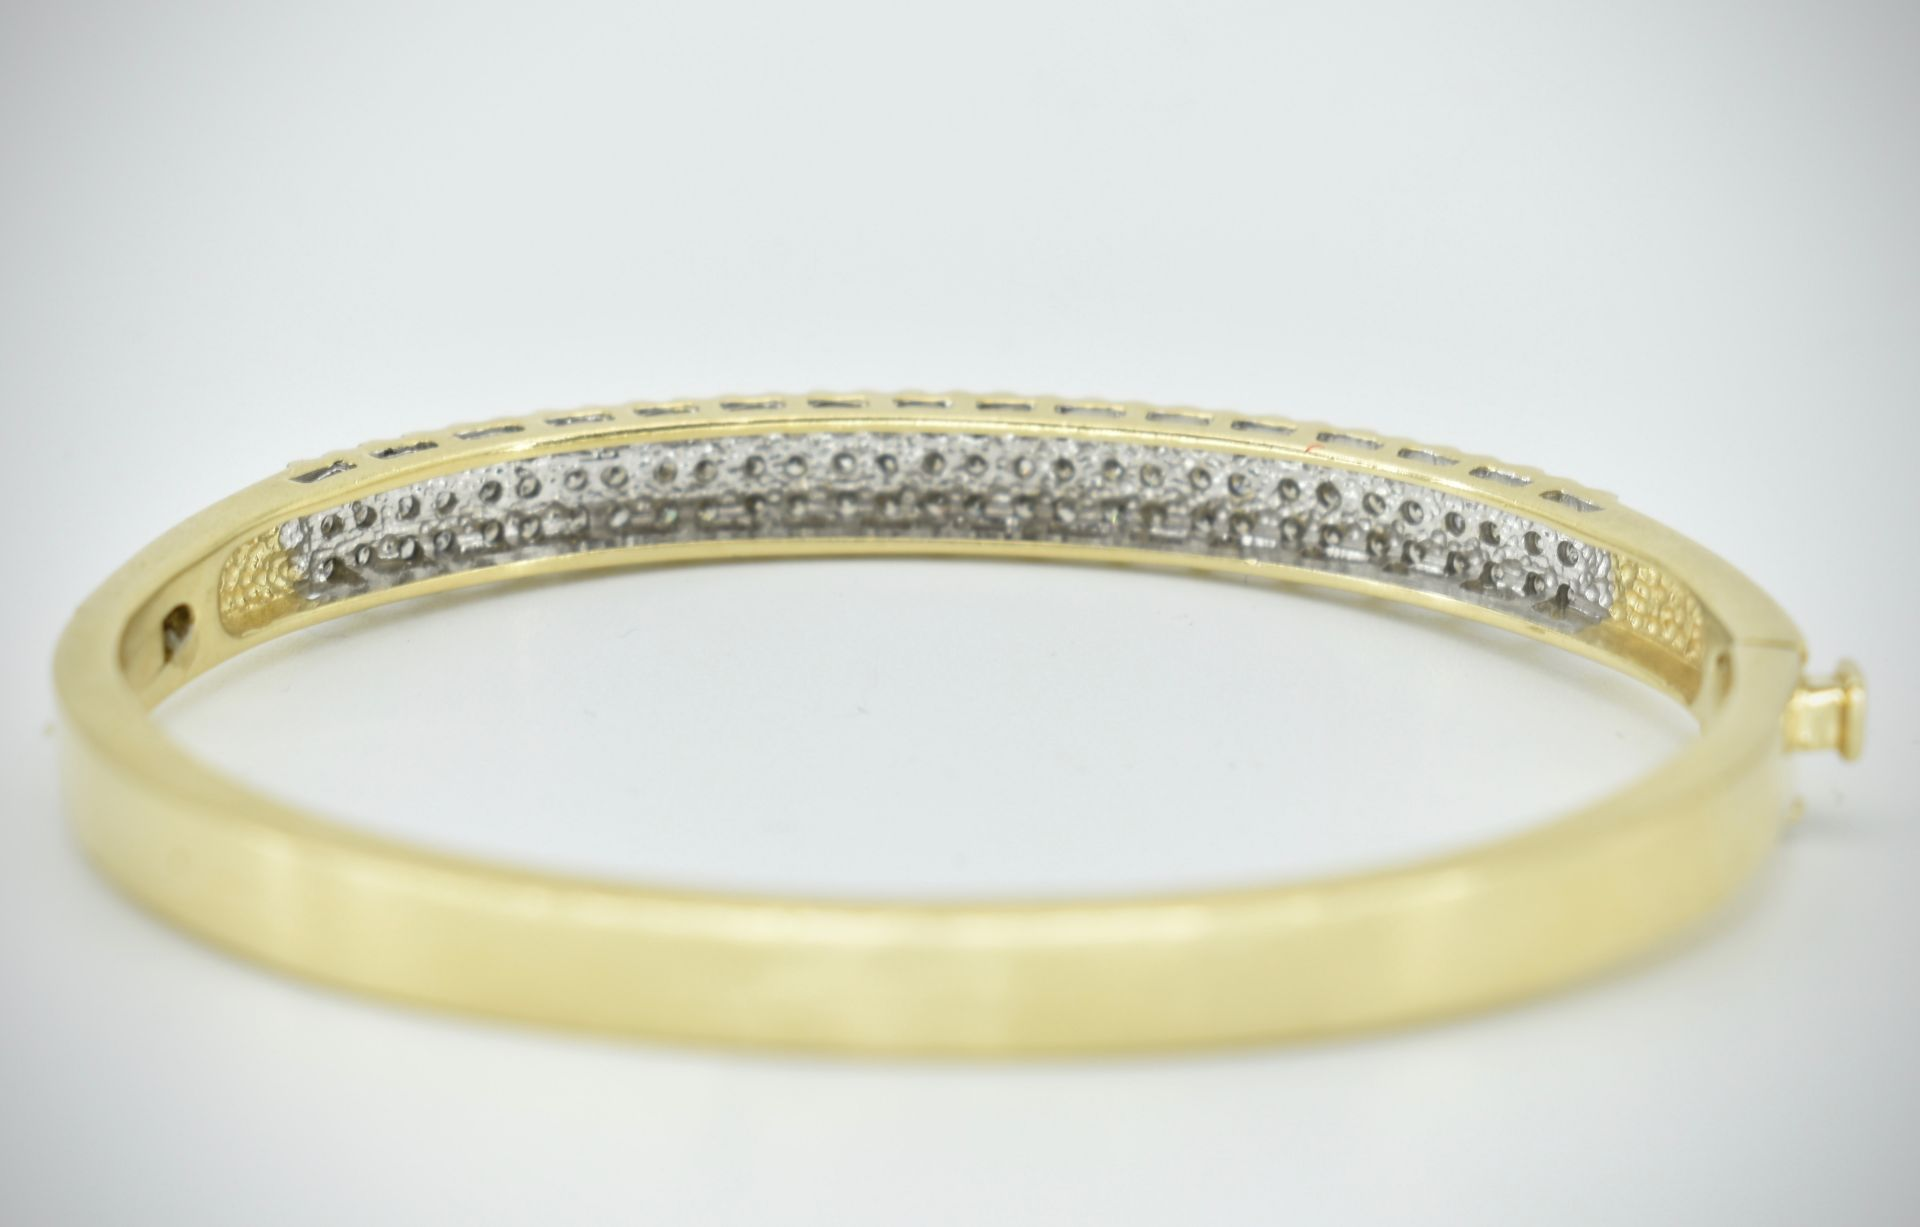 A 14ct Gold & Diamond Pave Fronted Bracelet - Bangle - Image 5 of 7